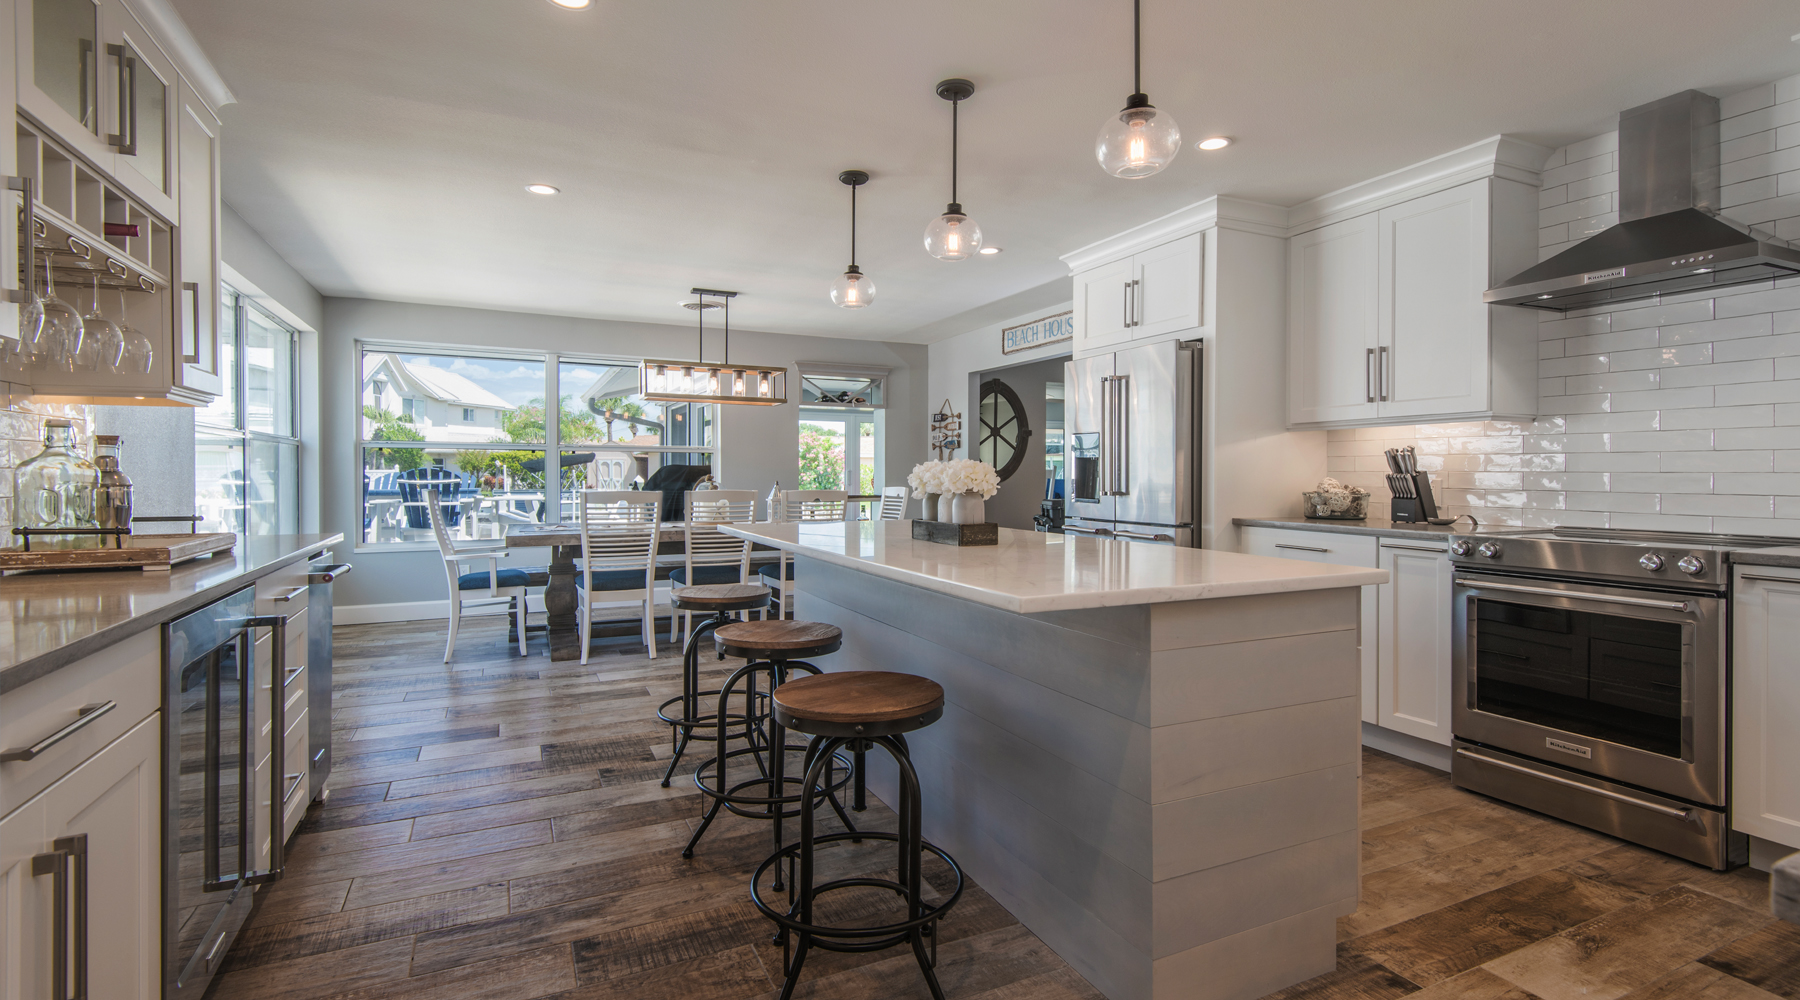 Kitchen Renovation in Longwood, Florida